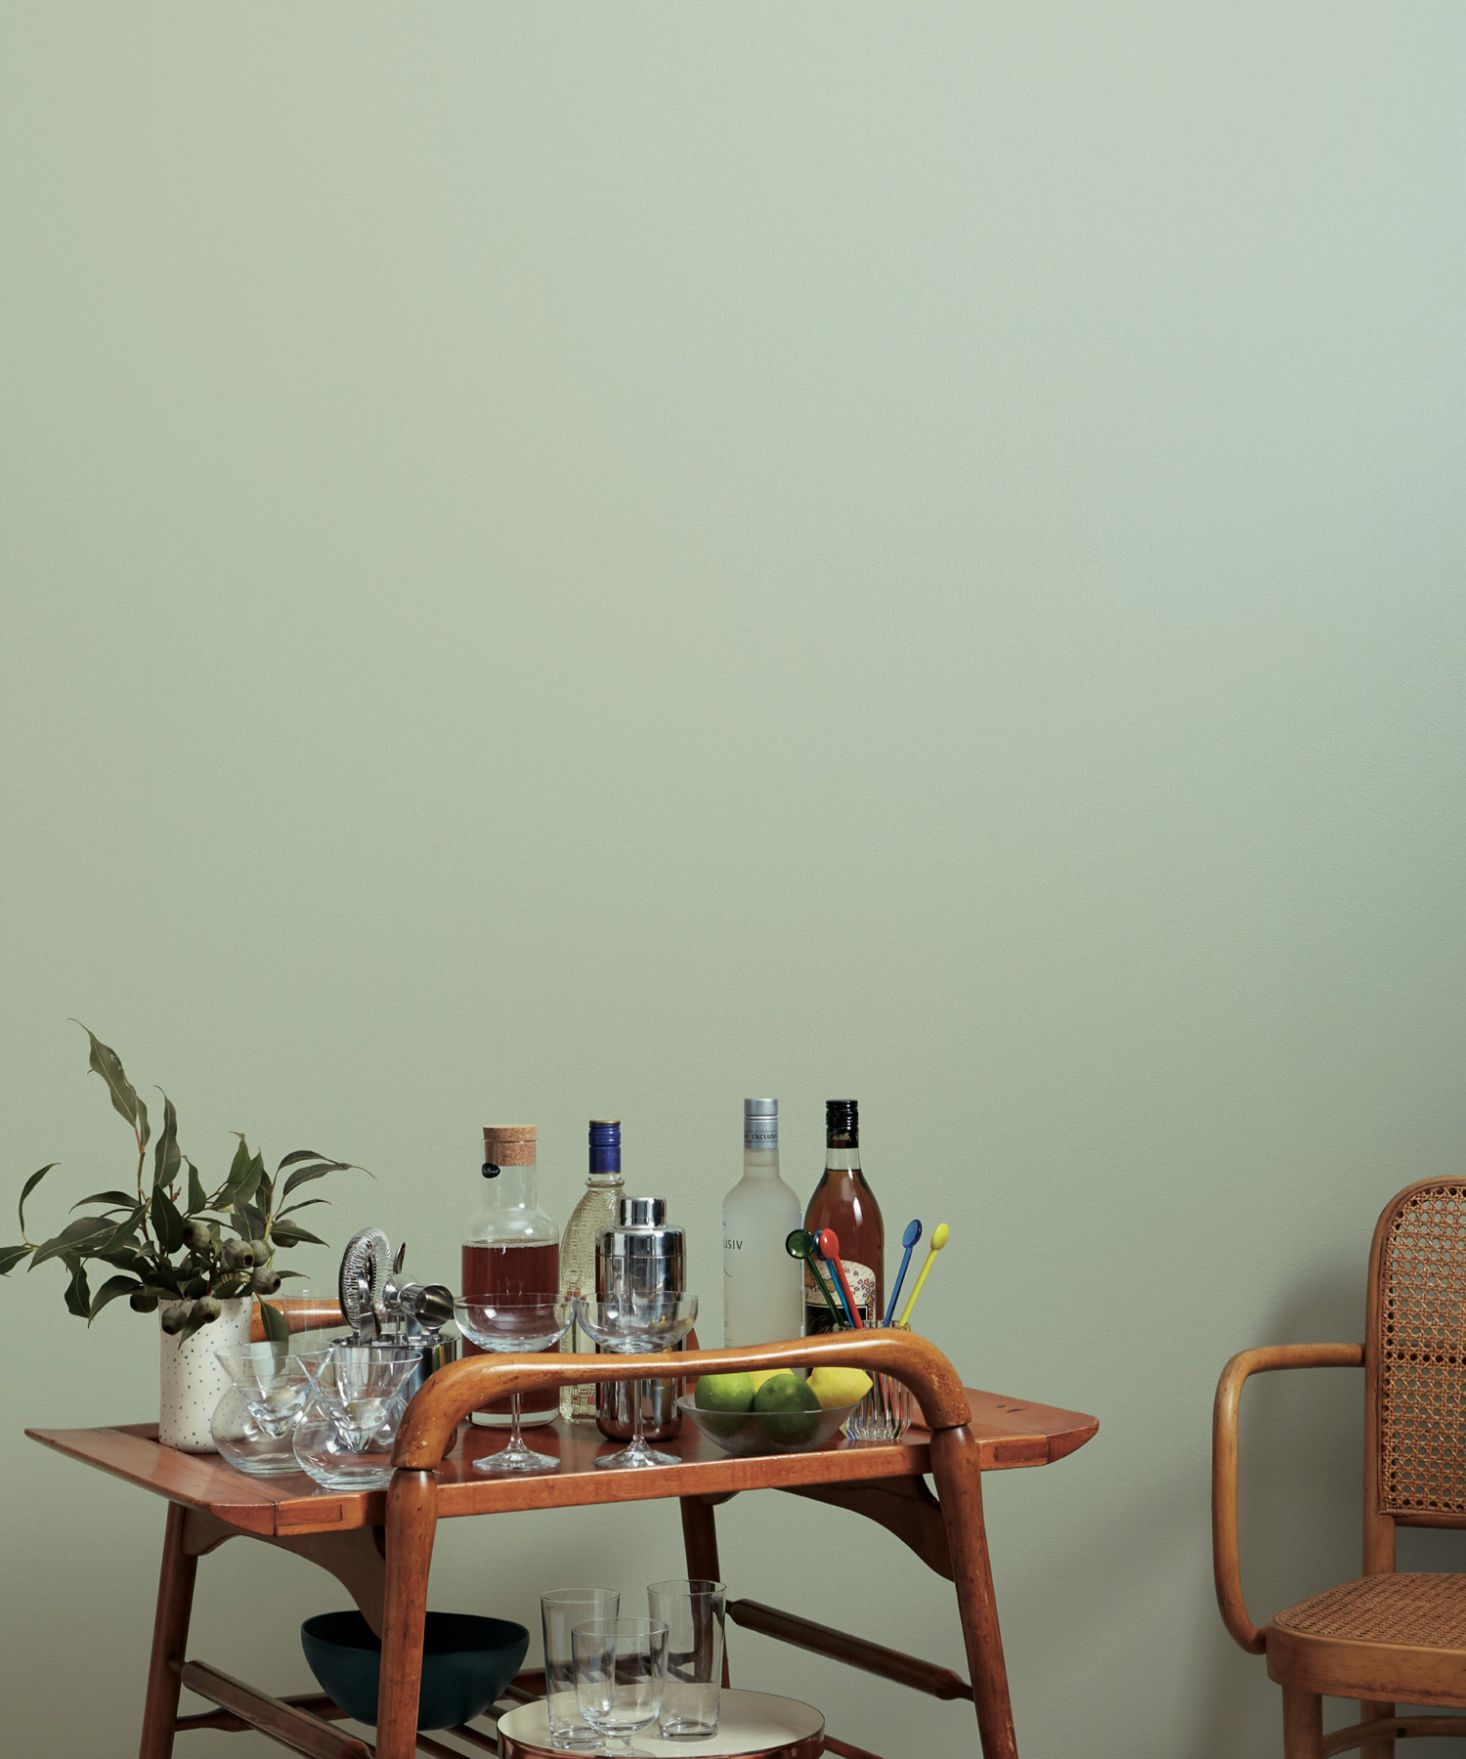 Expert advice how to choose paint like a pro the cheekily named dirty martini